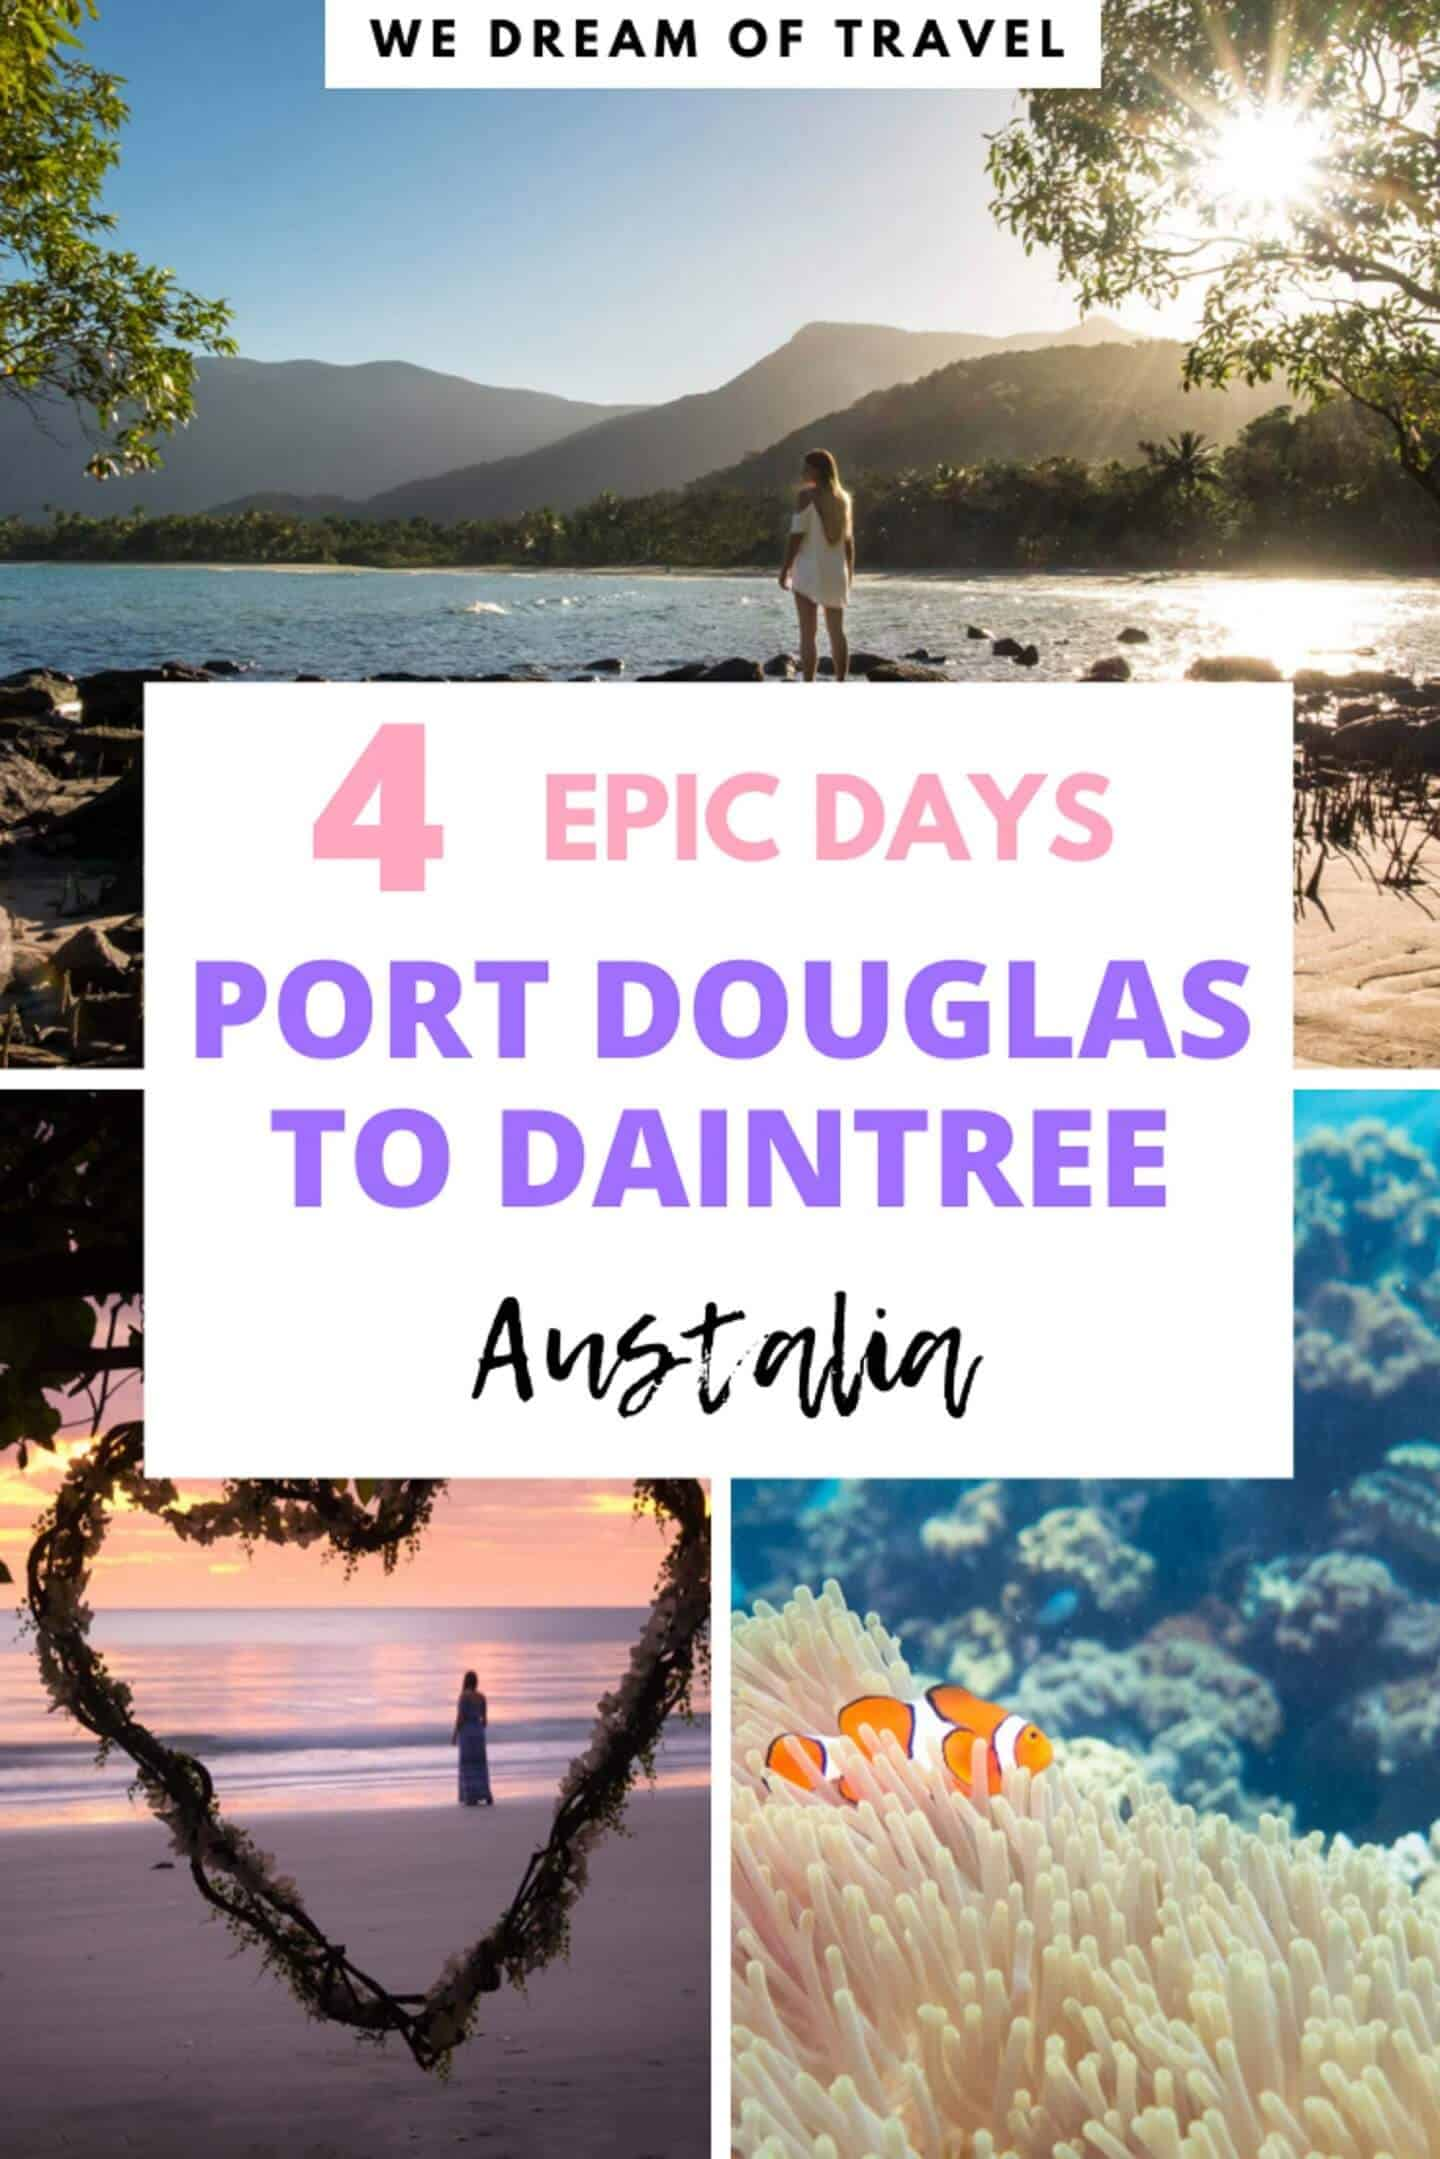 Port Douglas to Daintree 4 day itinerary.  A complete guide on how to spend 4 days in this beautiful part of Queensland, Australia.  Including things to do and where to stay. #portdouglas #daintree #australia